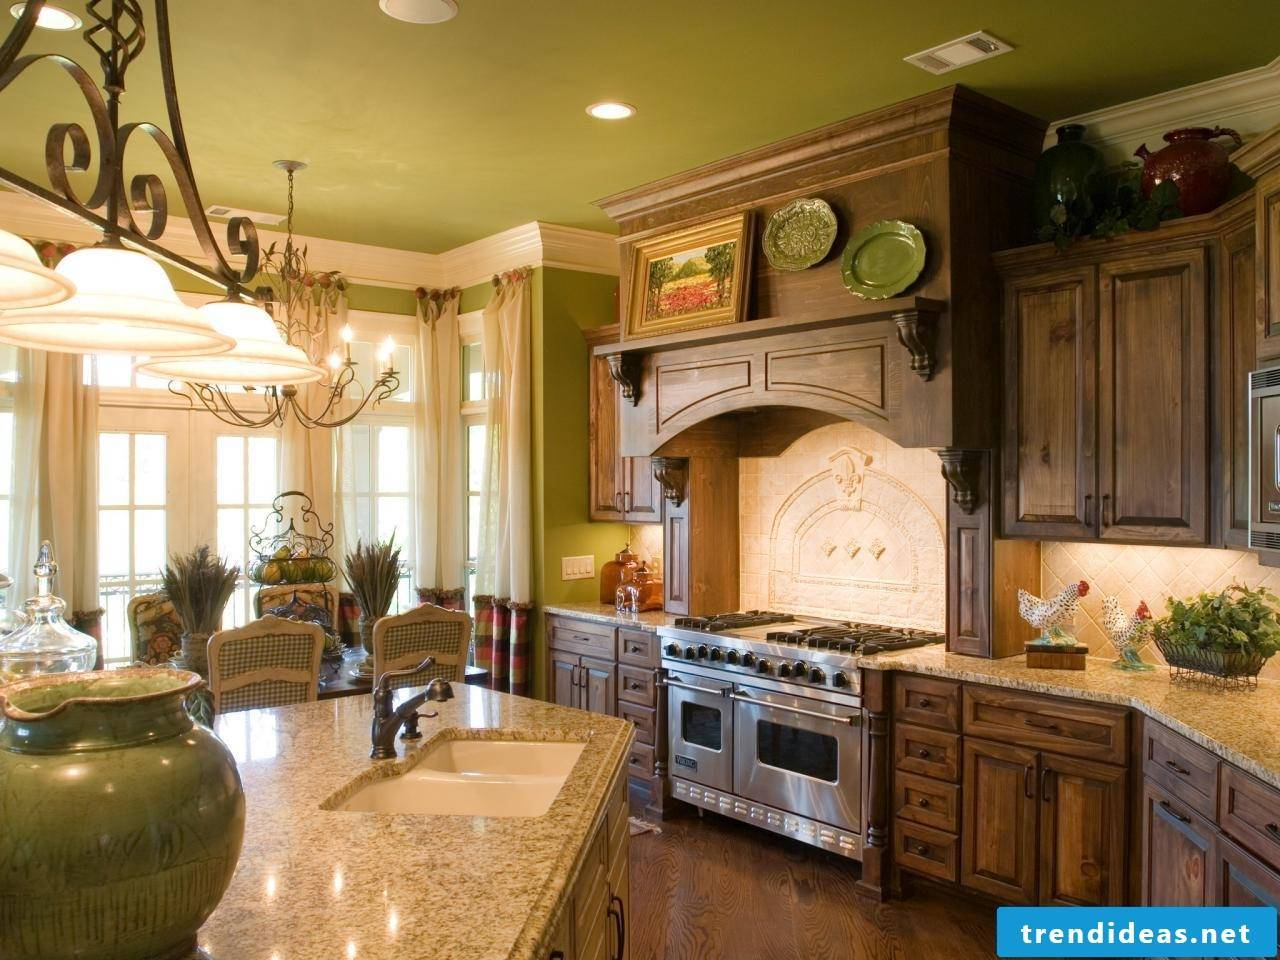 Modern and green - great kitchen in country style